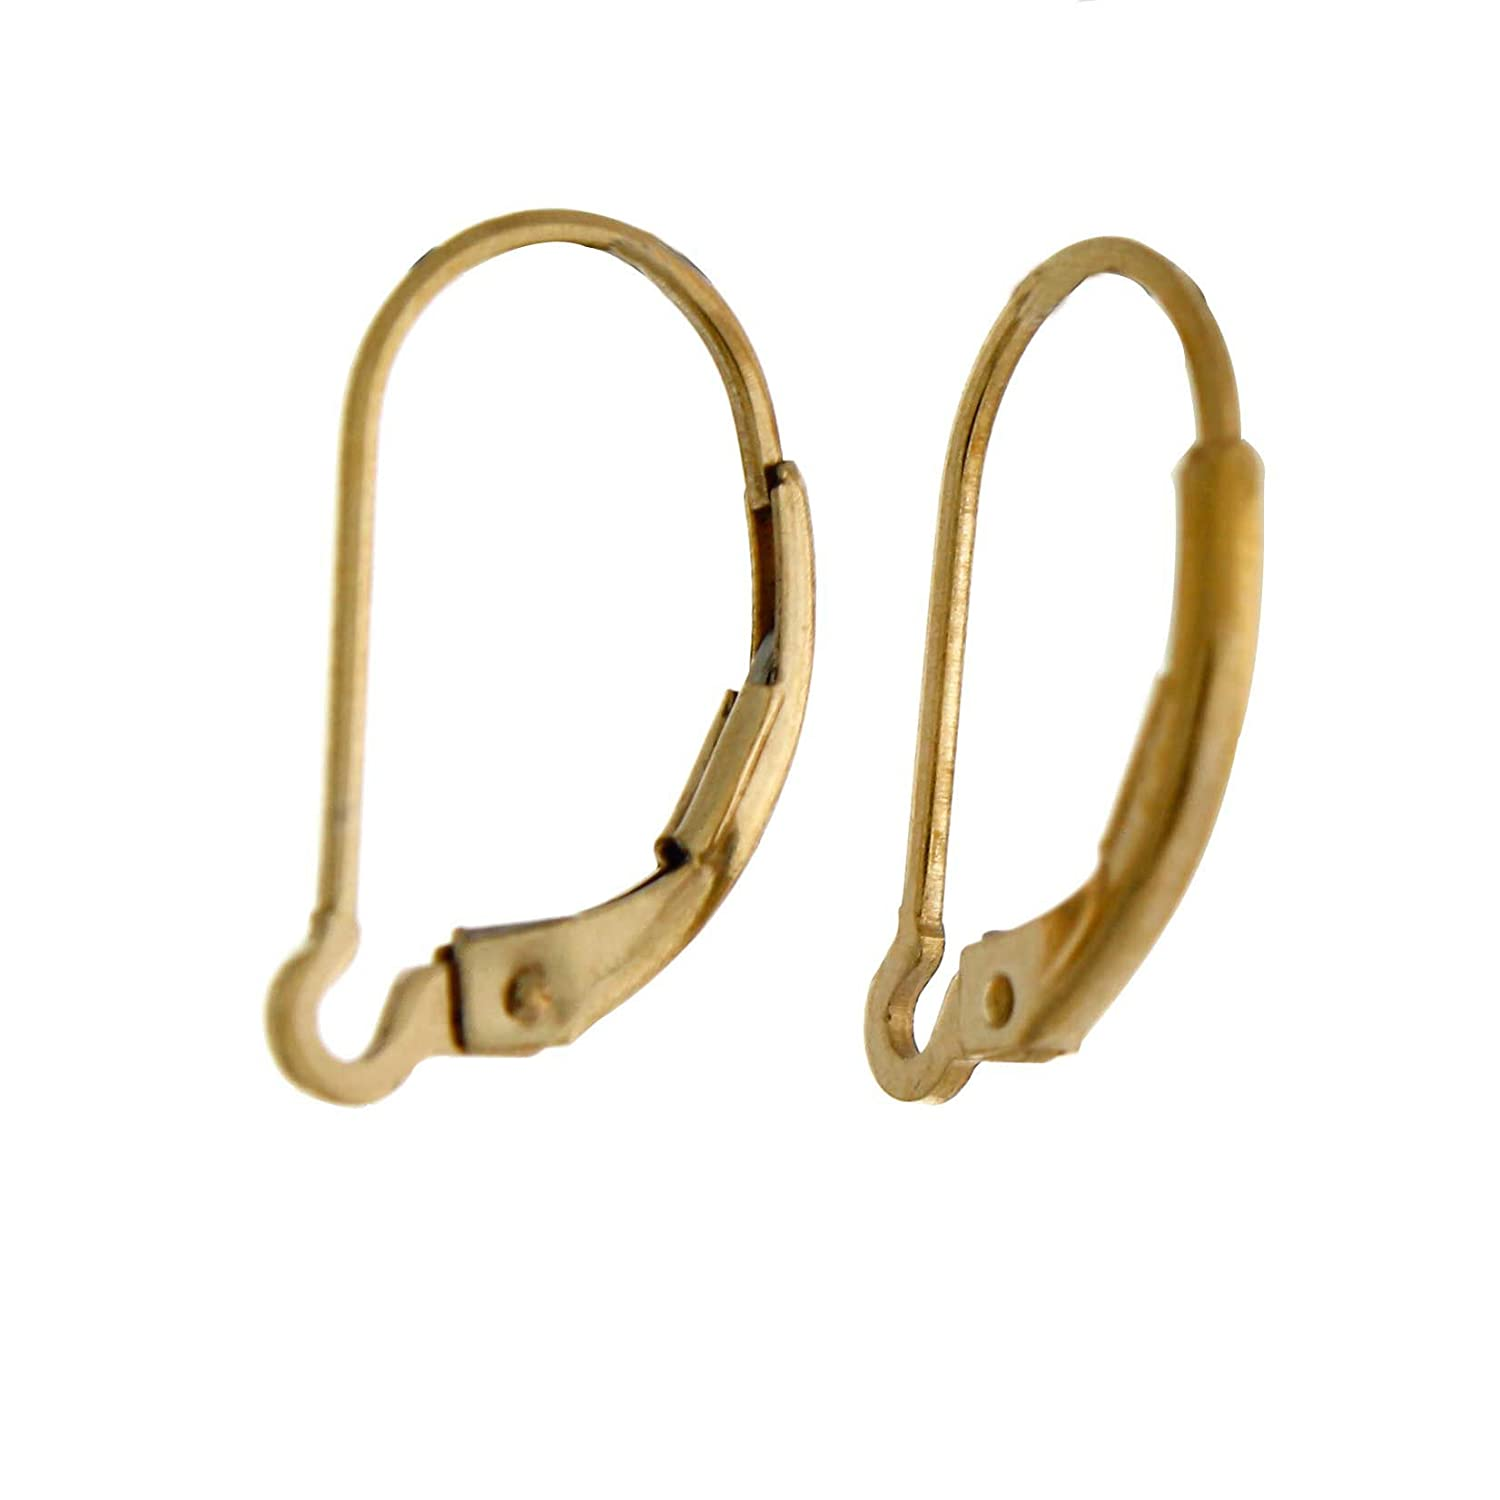 14K Gold Filled Interchangeable Lever Back Earring Findings 2 Pairs